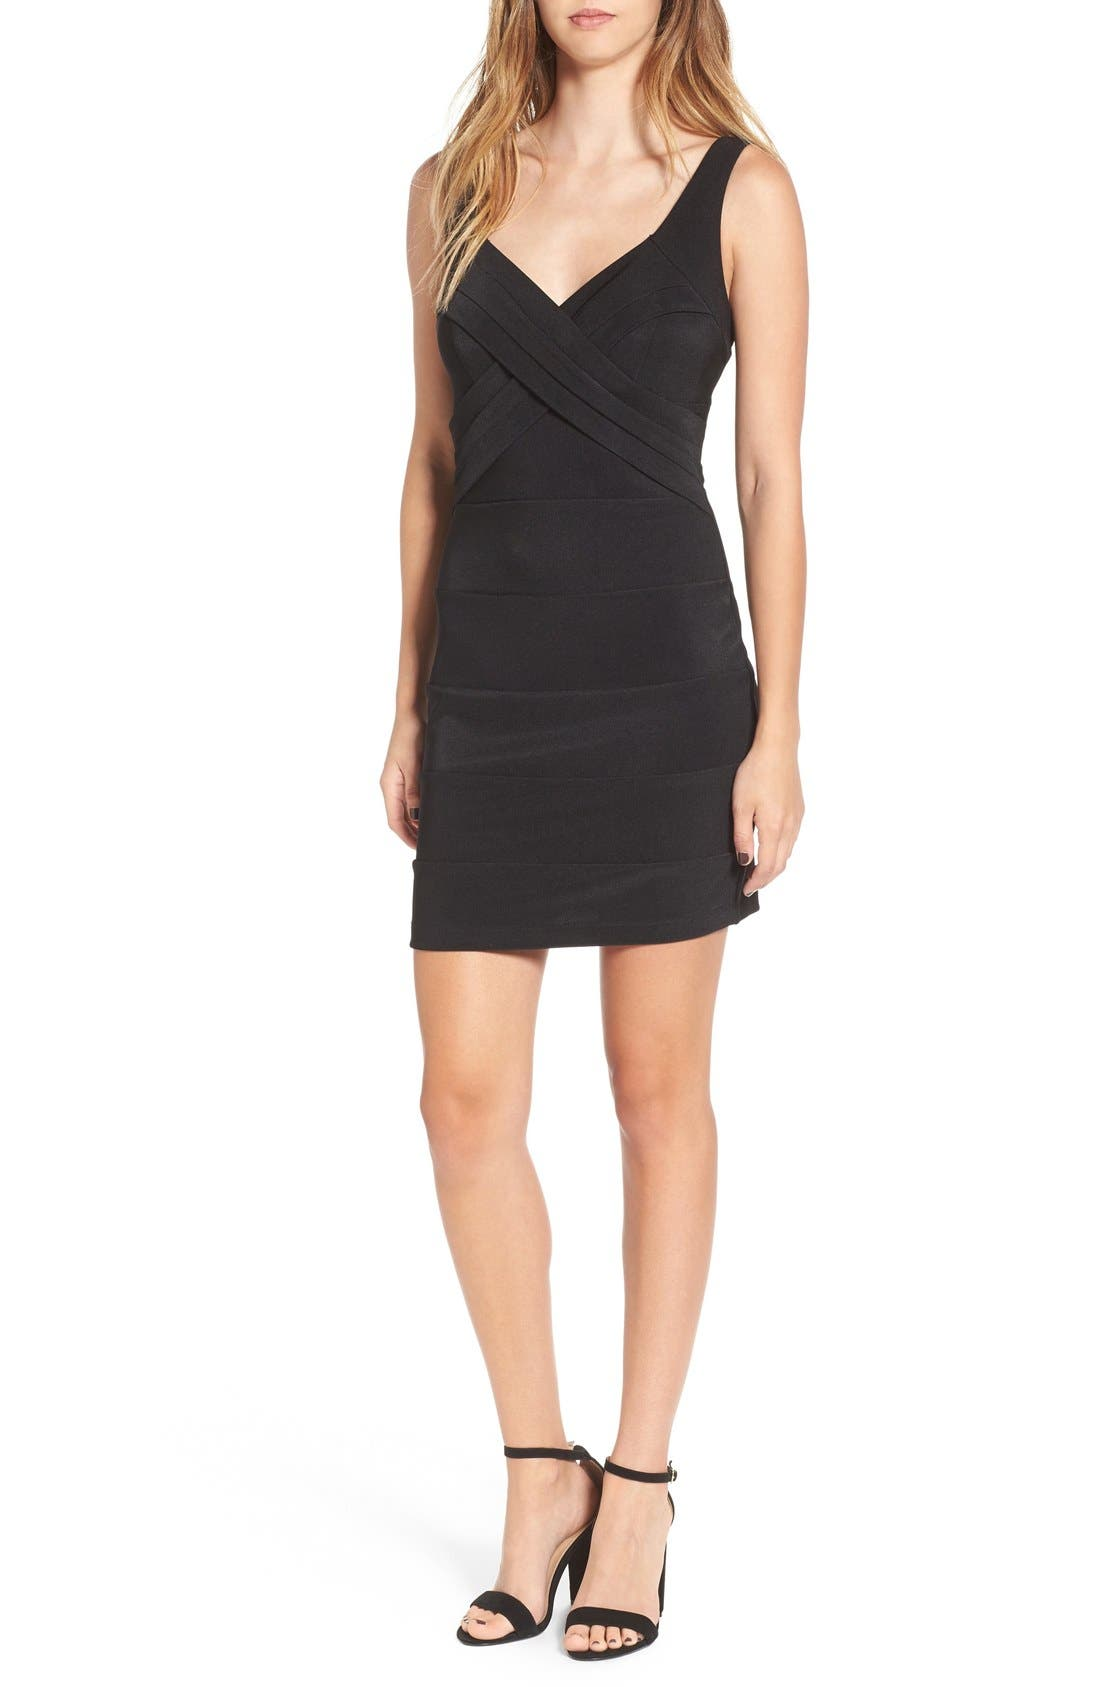 Alternate Image 1 Selected - Love, Nickie Lew Cross Front Body-Con Dress